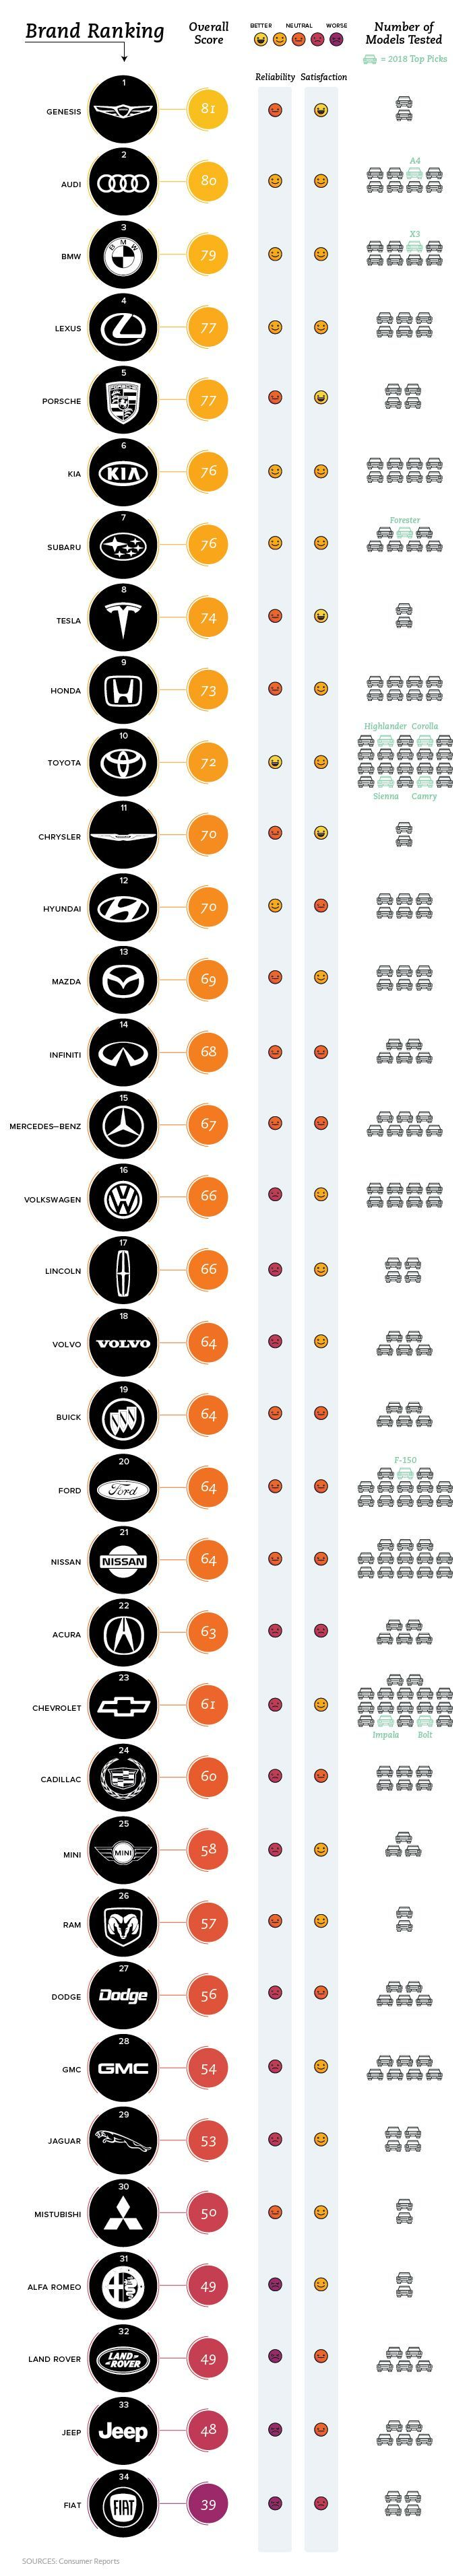 Infographic: Visualizing Ratings of the World s Top Car Brands   Infographic: Vi... -  - #brands #Car #Infographic #Ratings #Top #Visualizing #World